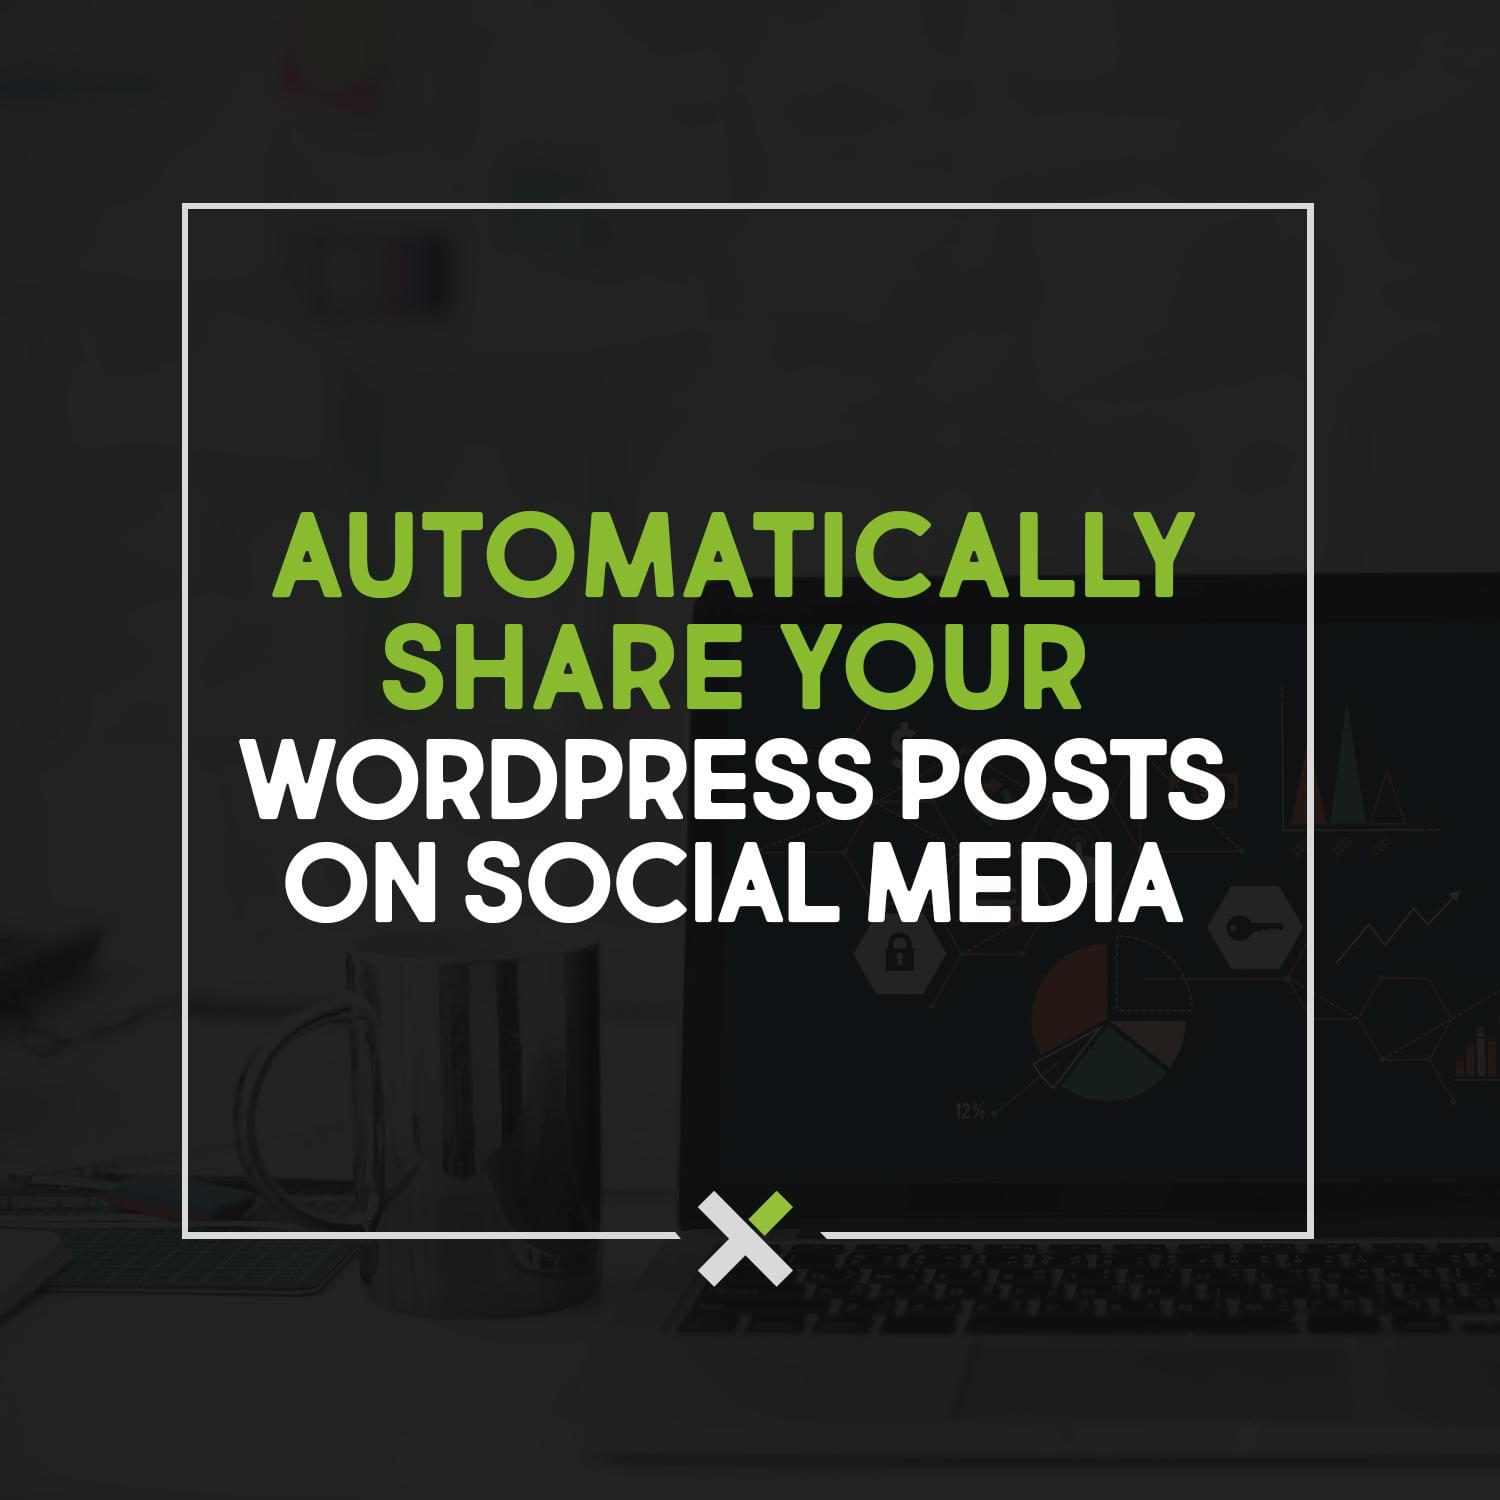 Auto-Post On Social Media - Social Media Auto-Publishing by touringxx - 114838